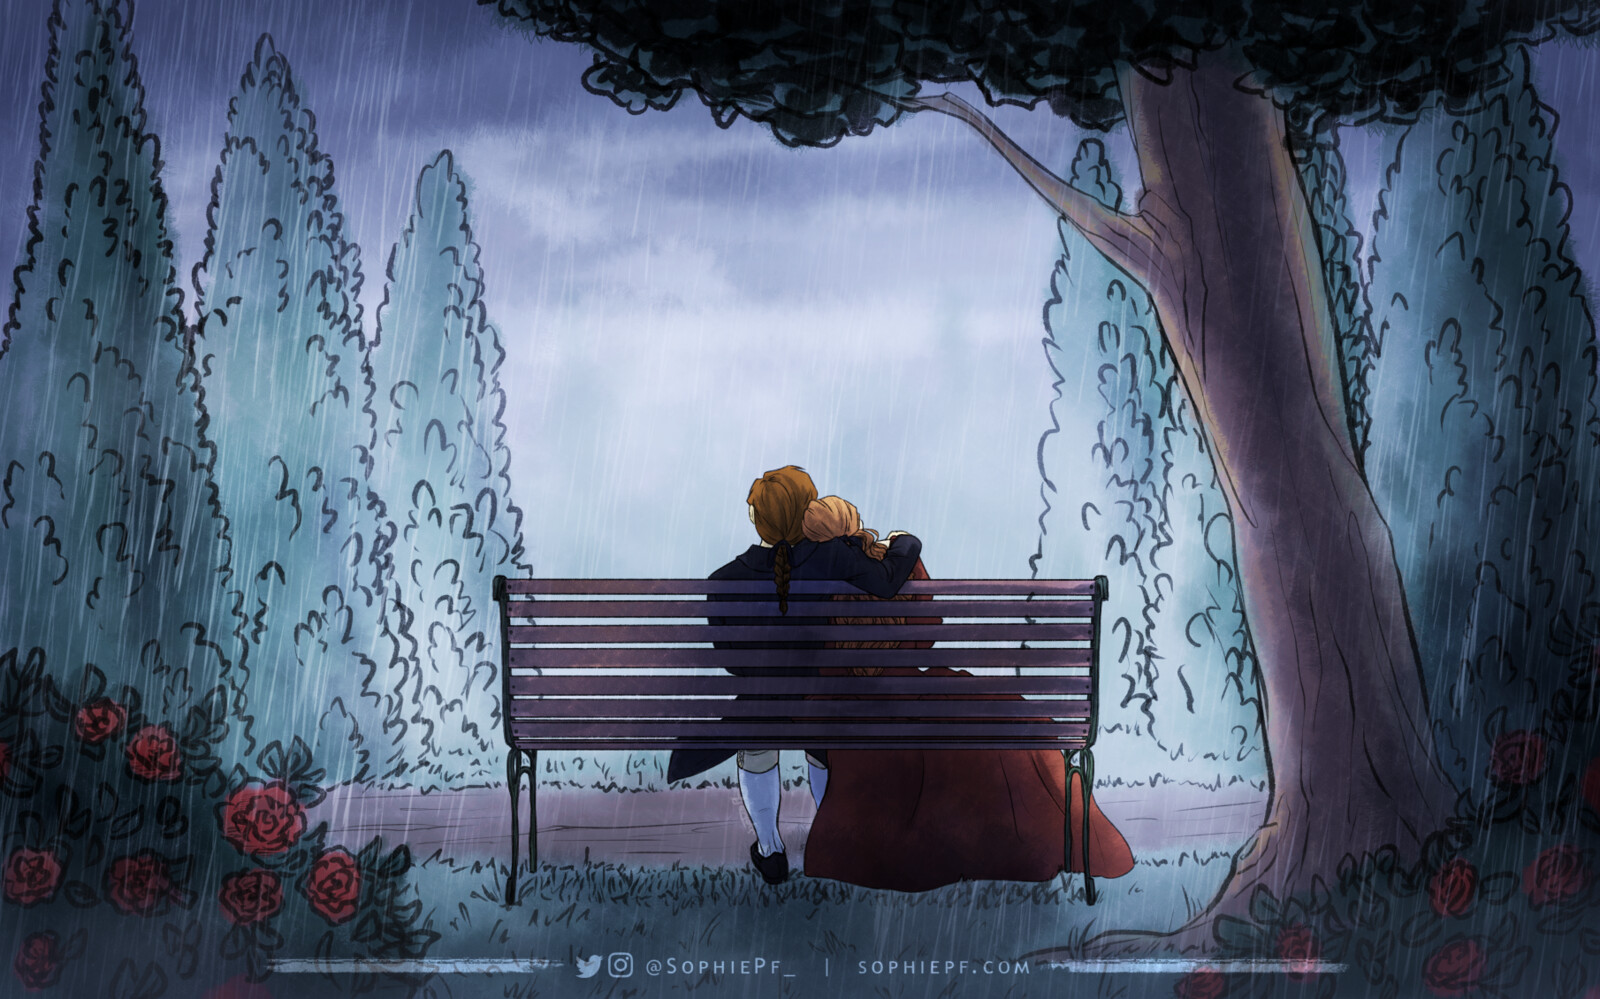 [Soul's Journey] Together in the Rain